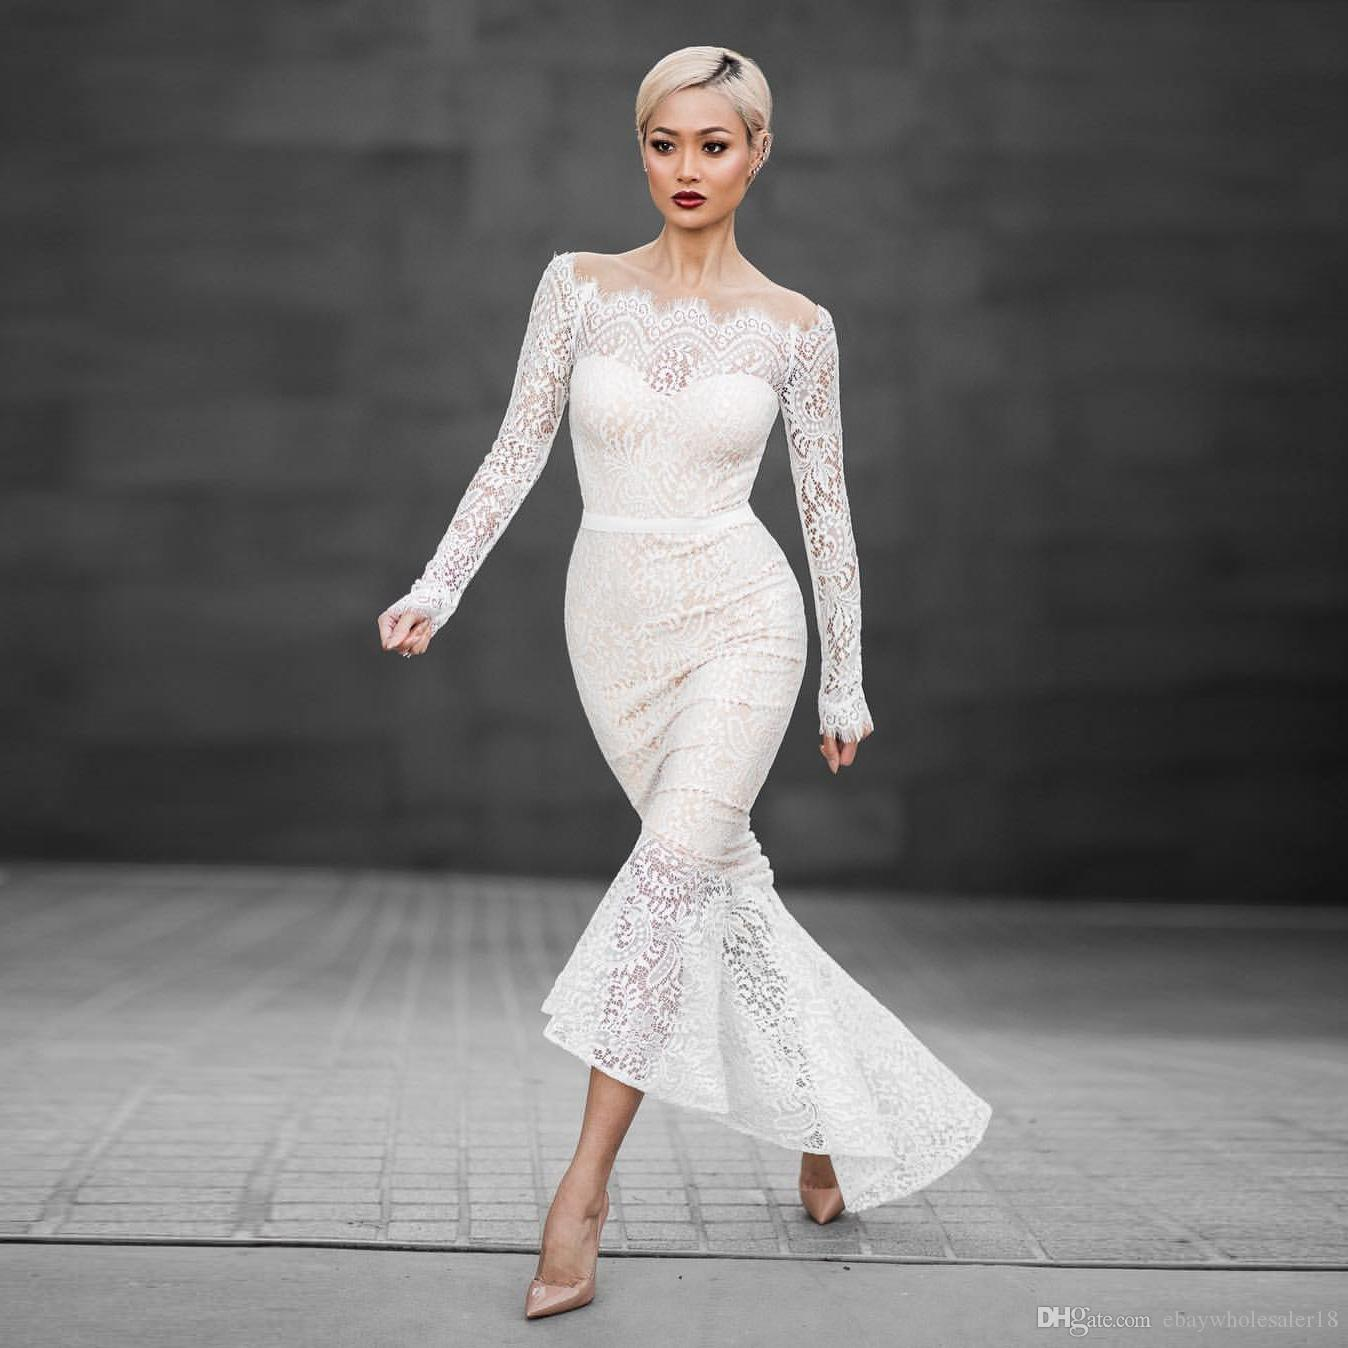 Trendy Wedding Gowns: Trendy Women Lace Dovetail Dresses 2017 Spring Summer